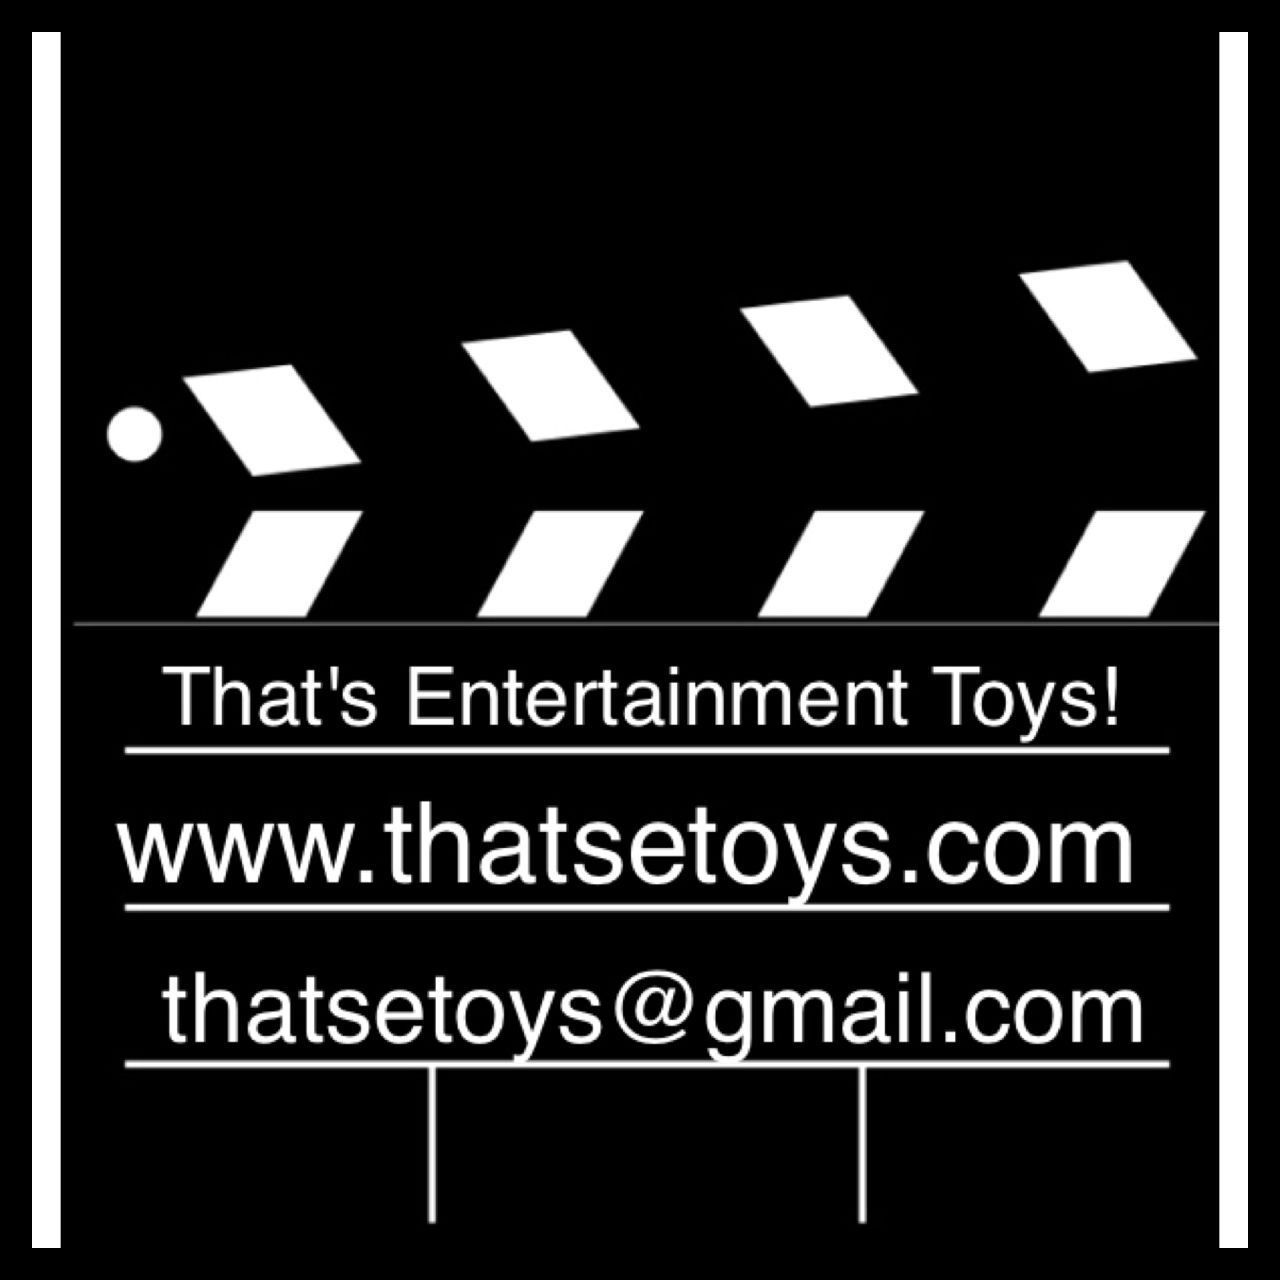 That's Entertainment Toys & More!!!